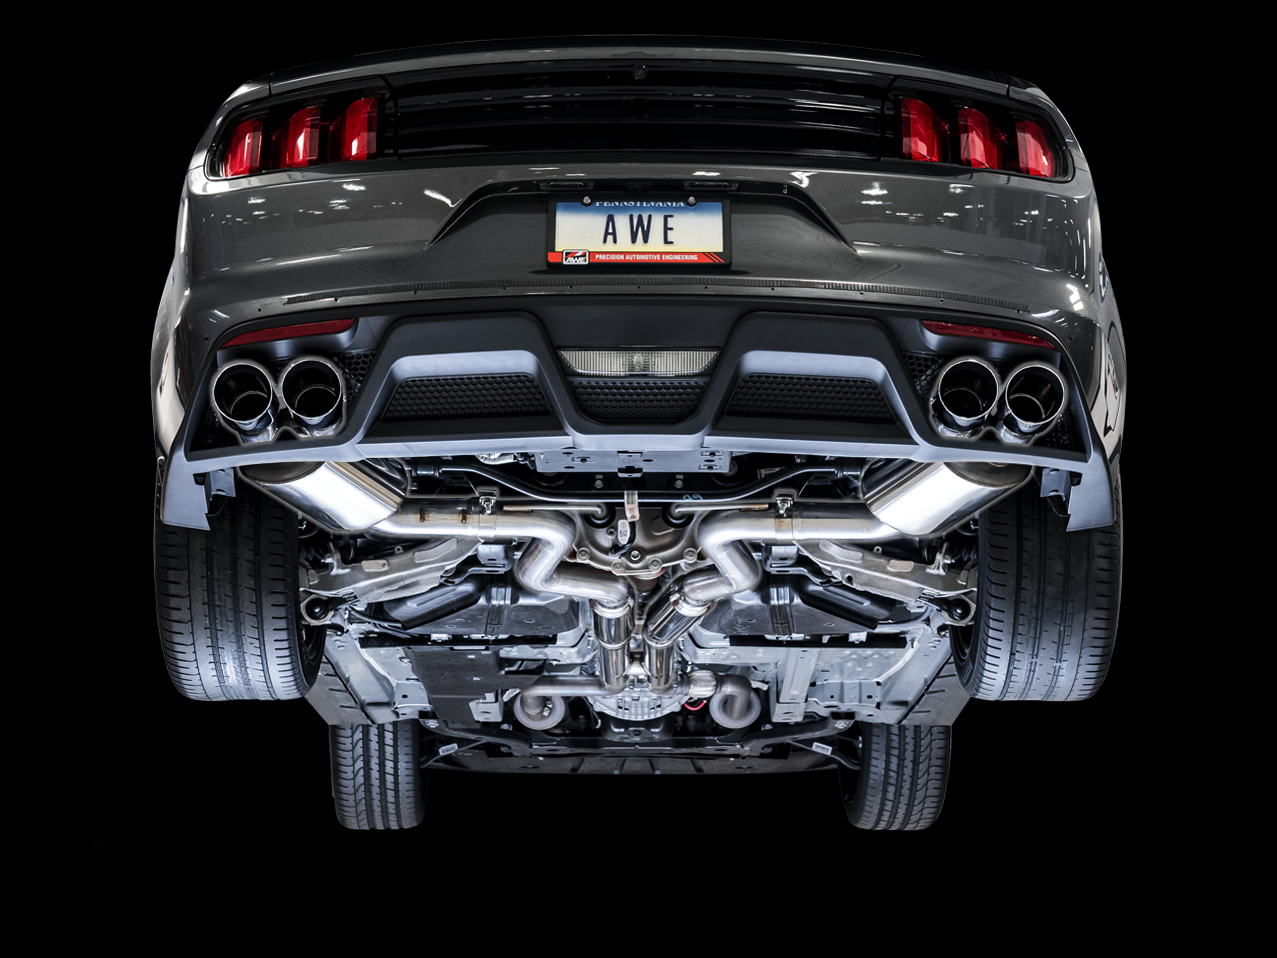 awe 2015 2017 ford mustang gt touring edition cat back exhaust quad tip